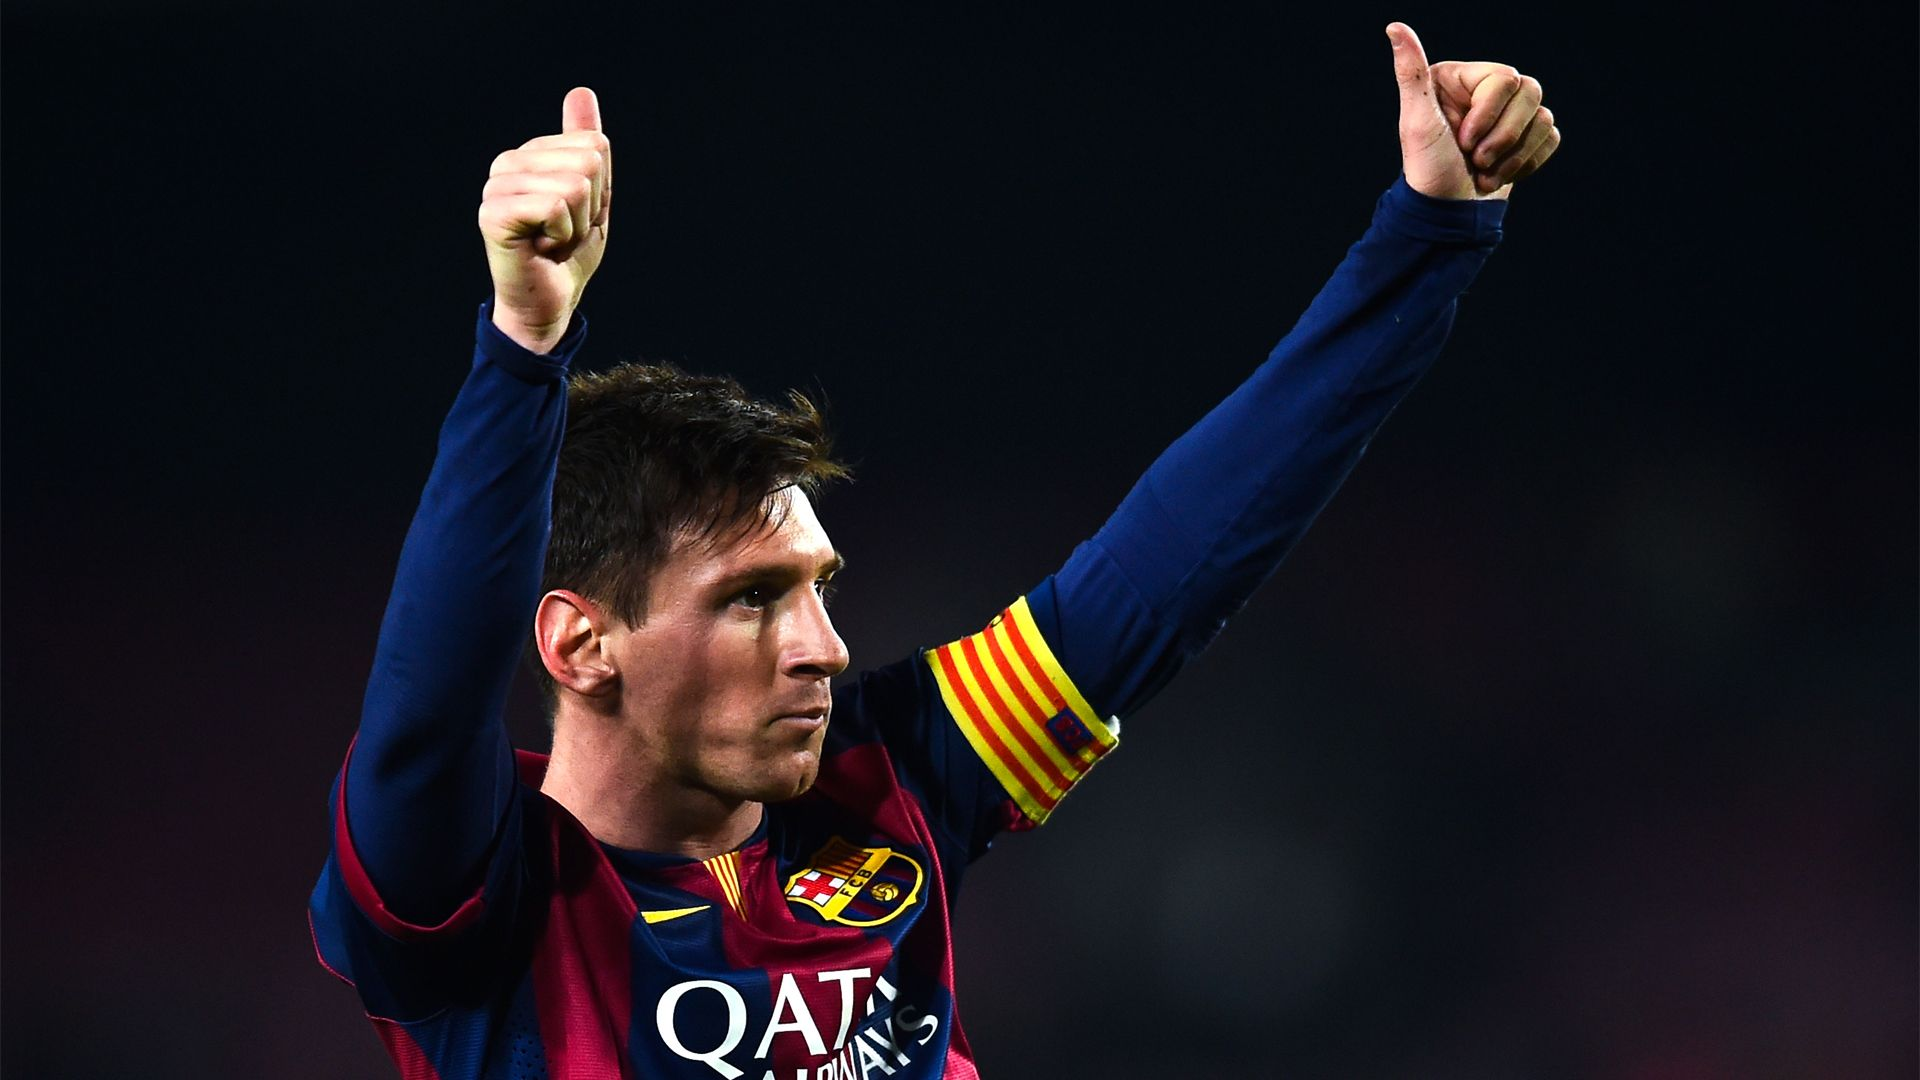 Messi Hd Wallpapers 1080p Best Wallpaper Hd Lionel Messi Wallpapers Lionel Messi Messi